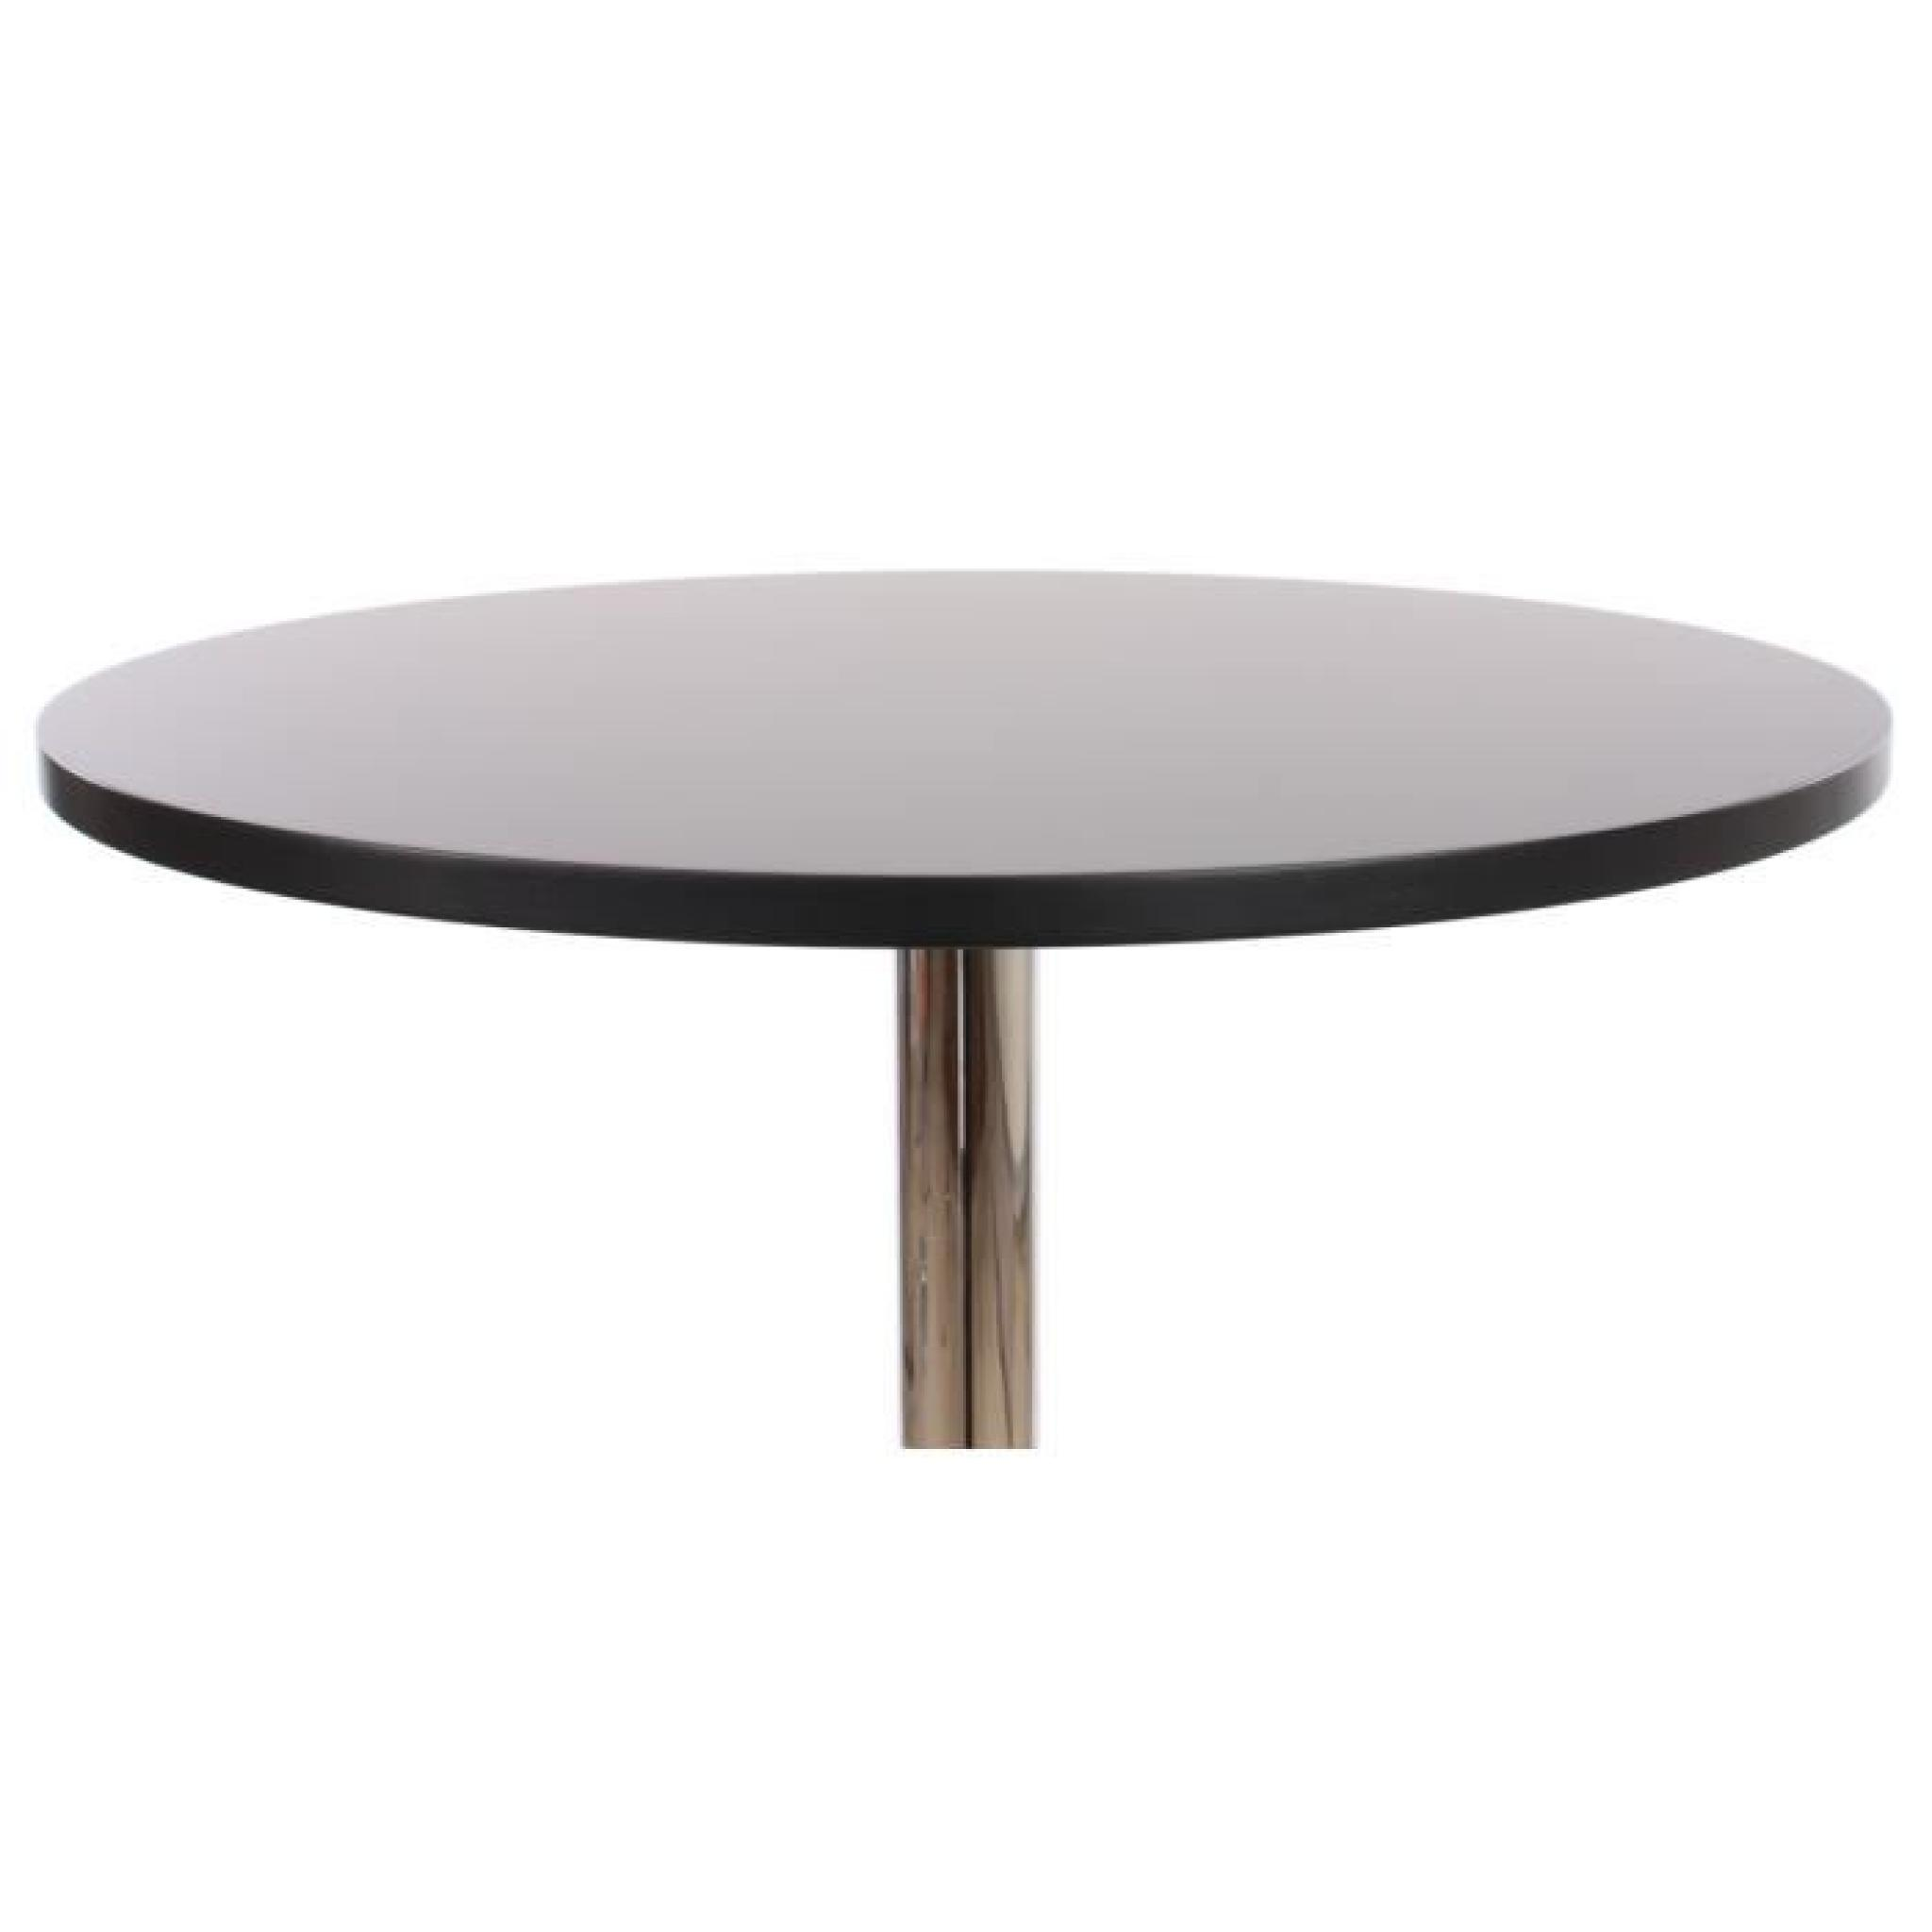 Table de bar table haute bari ronde avec repose pied for Table de chevet noir pas cher